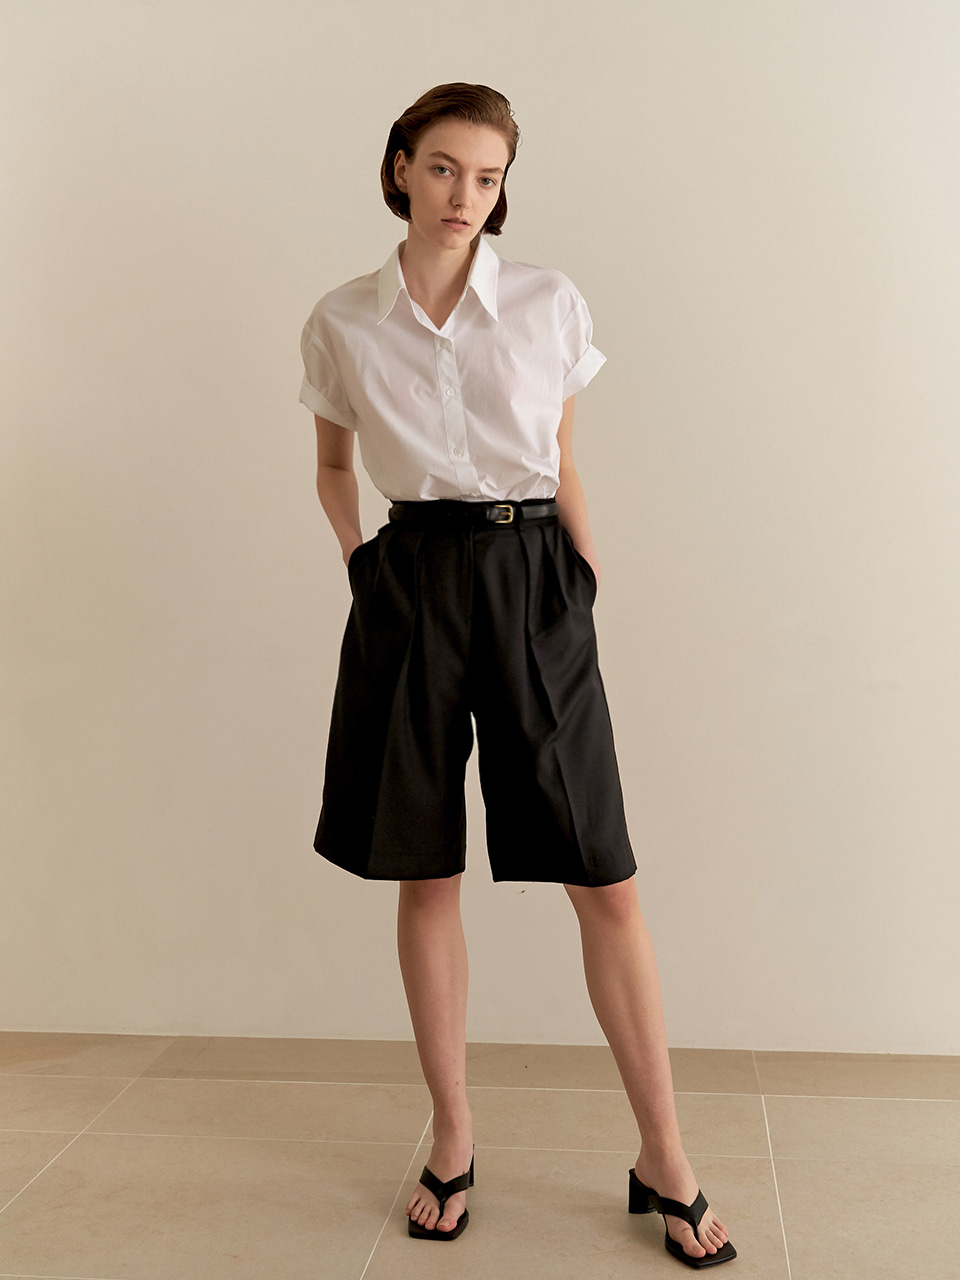 [8/20순차출고]Half cotton shirt - white